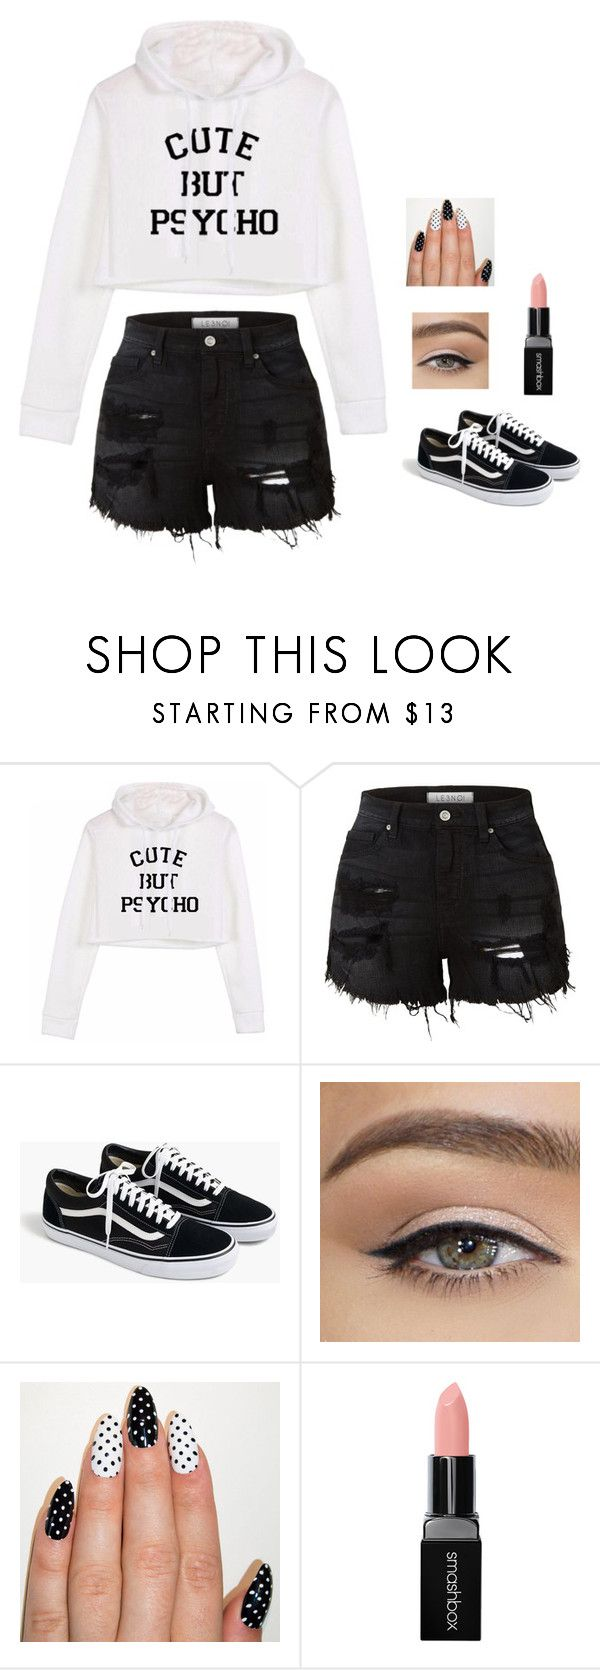 """Maybe I'm crazy or maybe just crazy in love"" by sillybands95 ❤ liked on Polyvore featuring LE3NO, J.Crew and Smashbox"